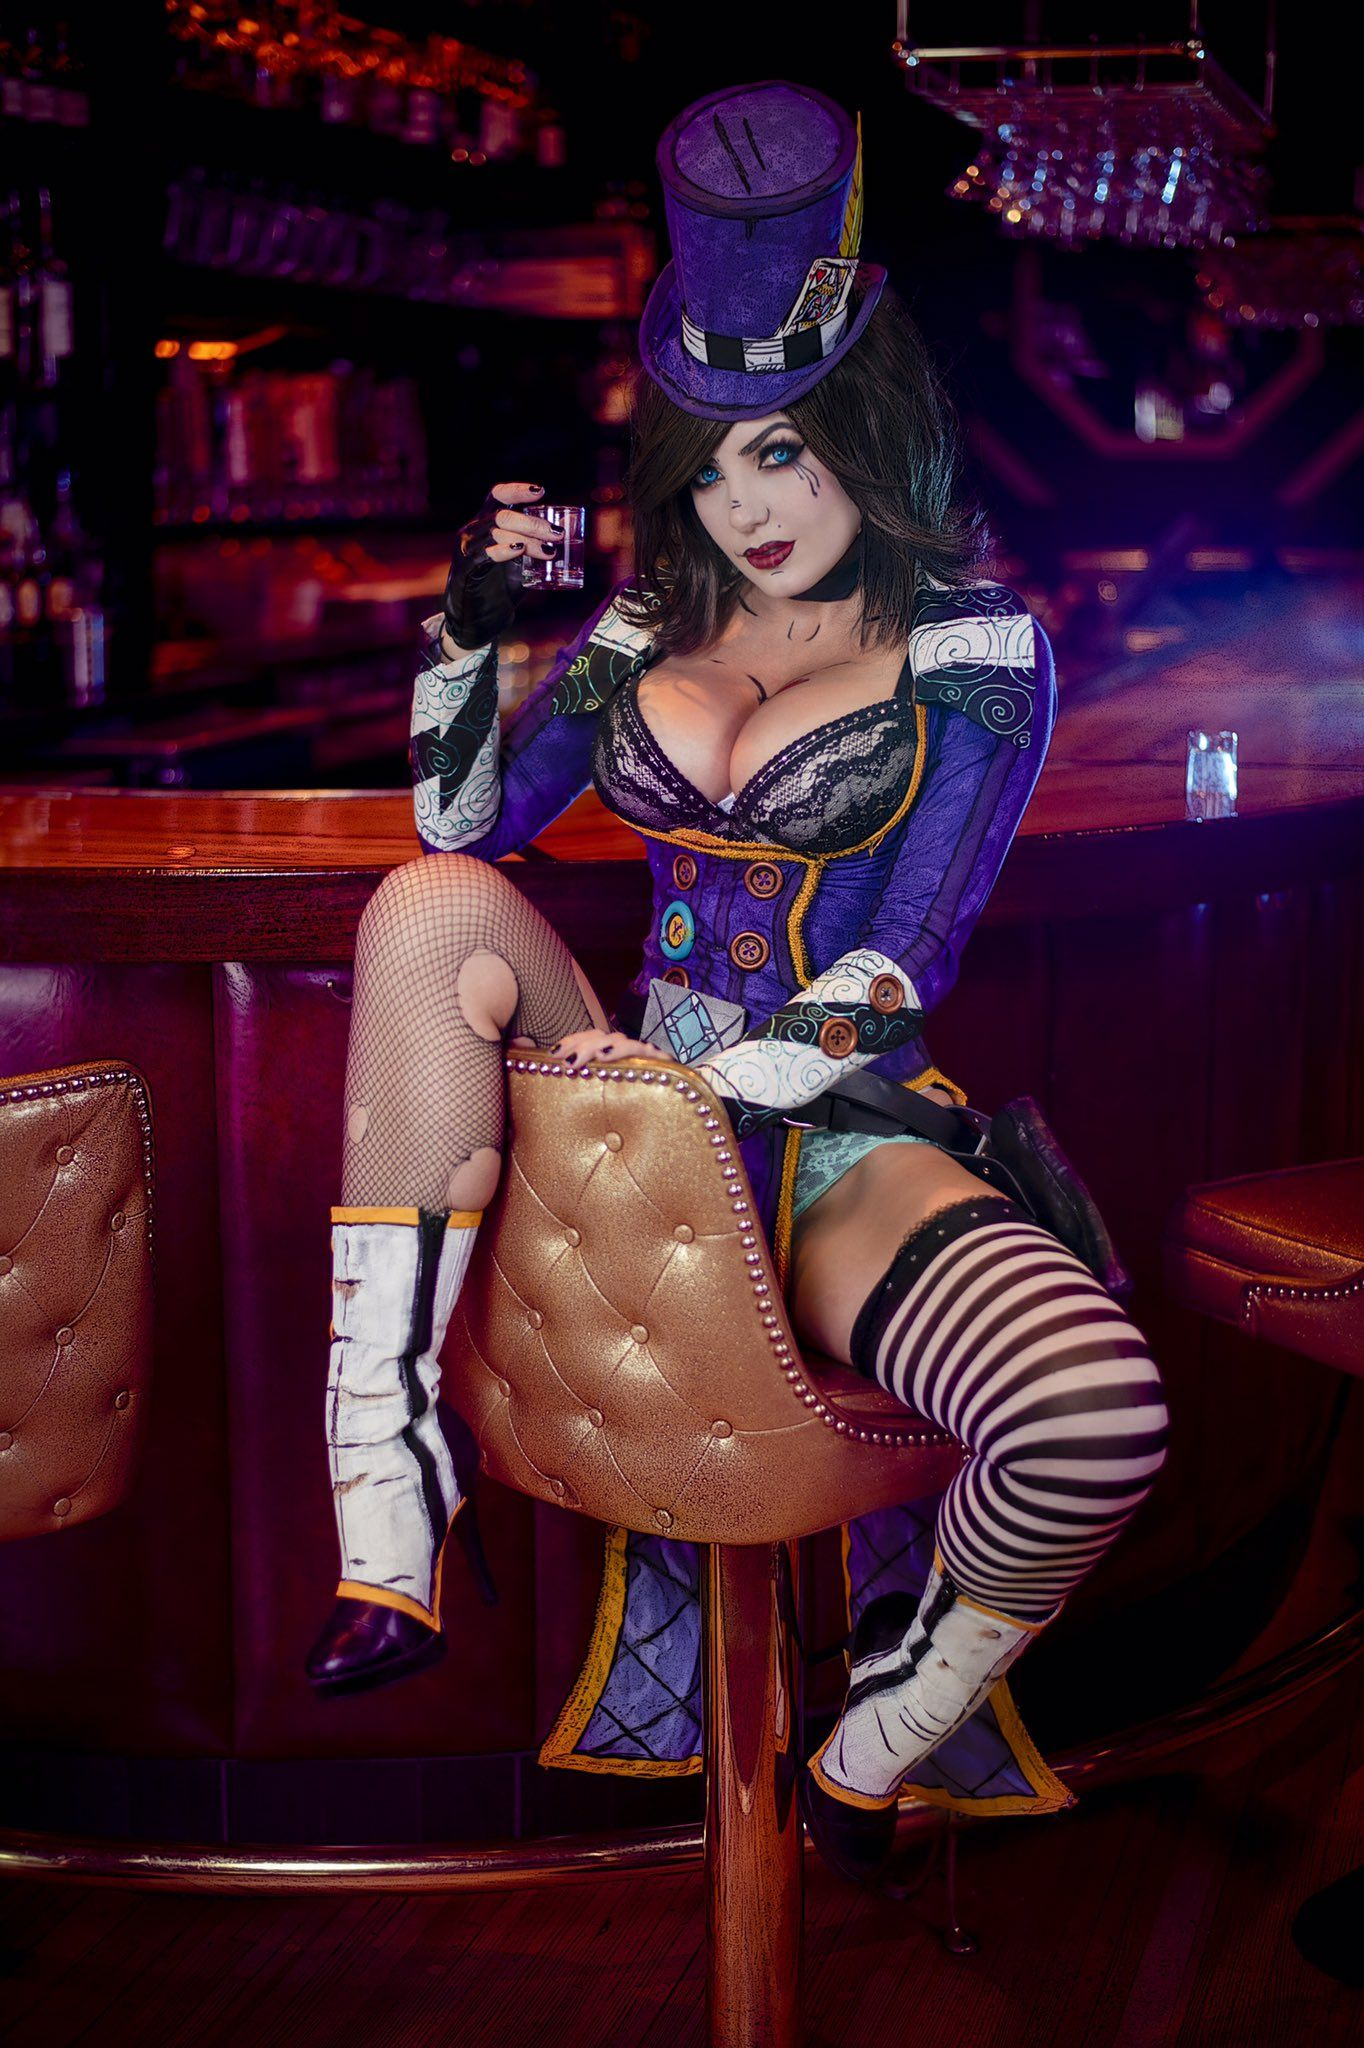 moxxi cosplay porn